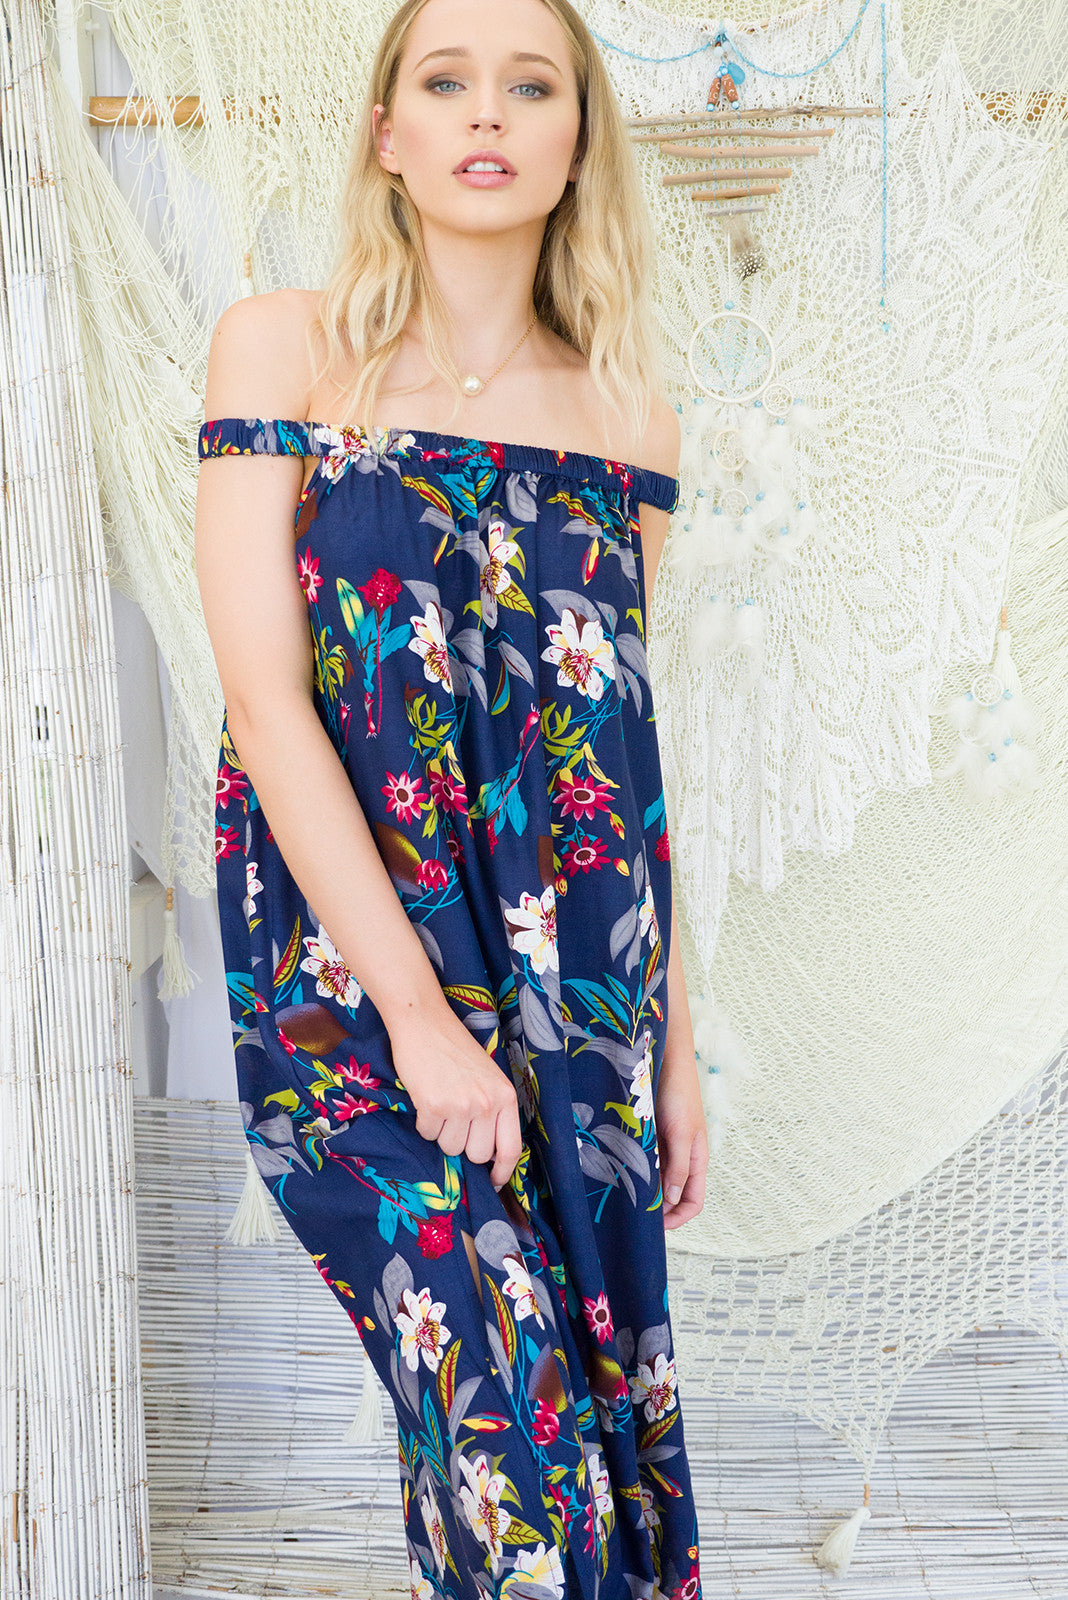 Pina Colada Jungle Maxi Dress, tropical print dress, off the shoulder dress, maxi dress